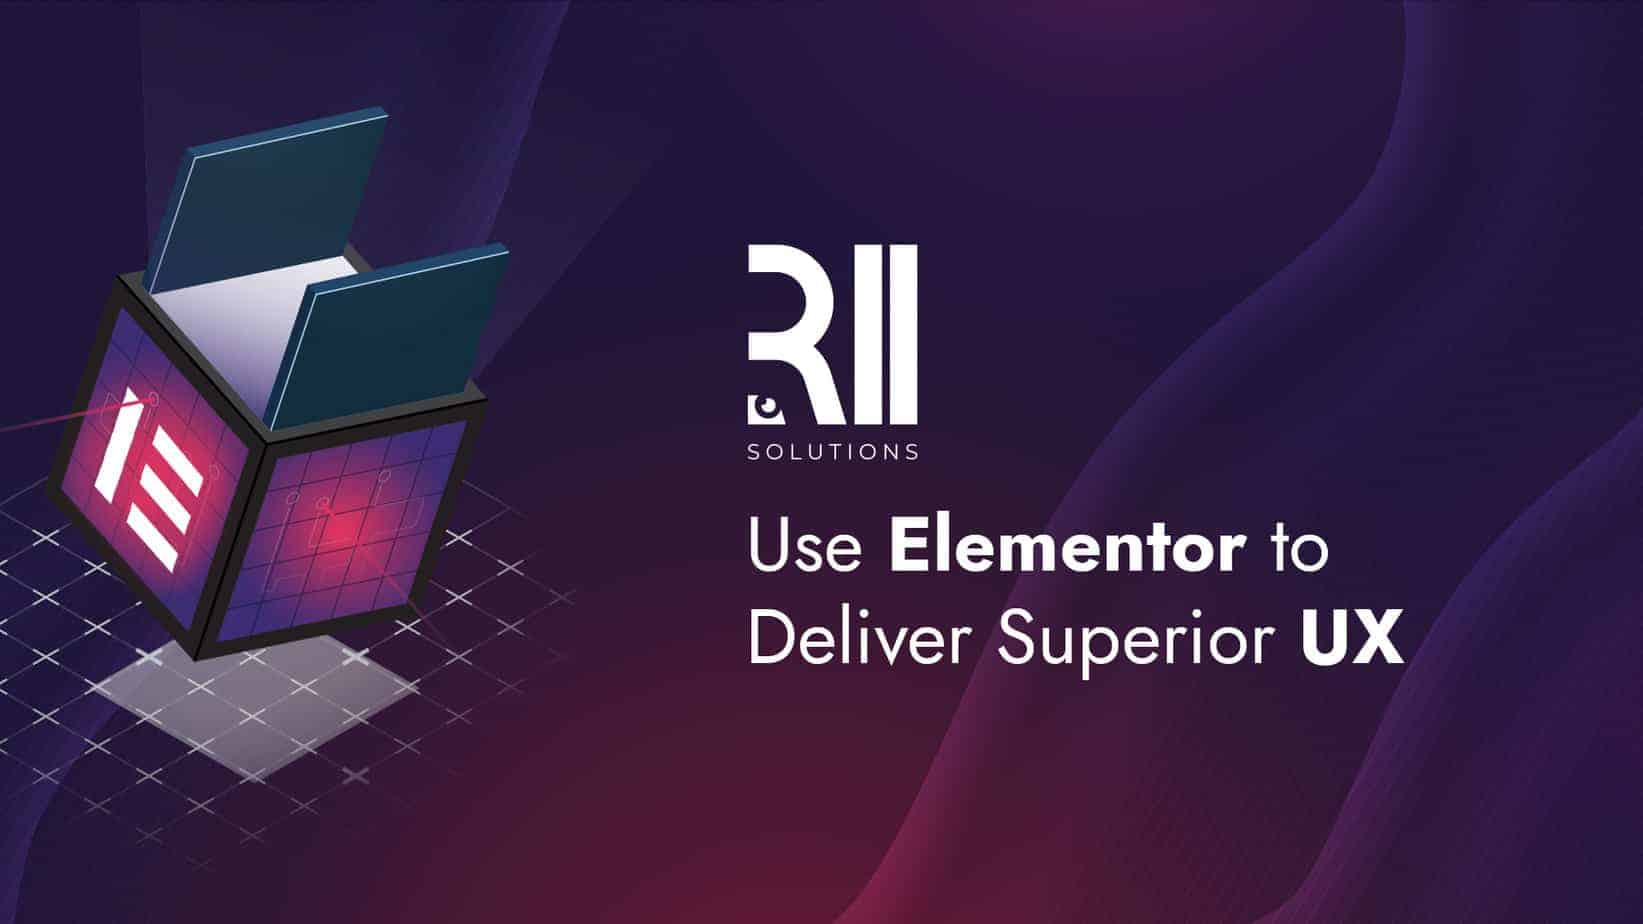 Use Elementor to Deliver Superior UX